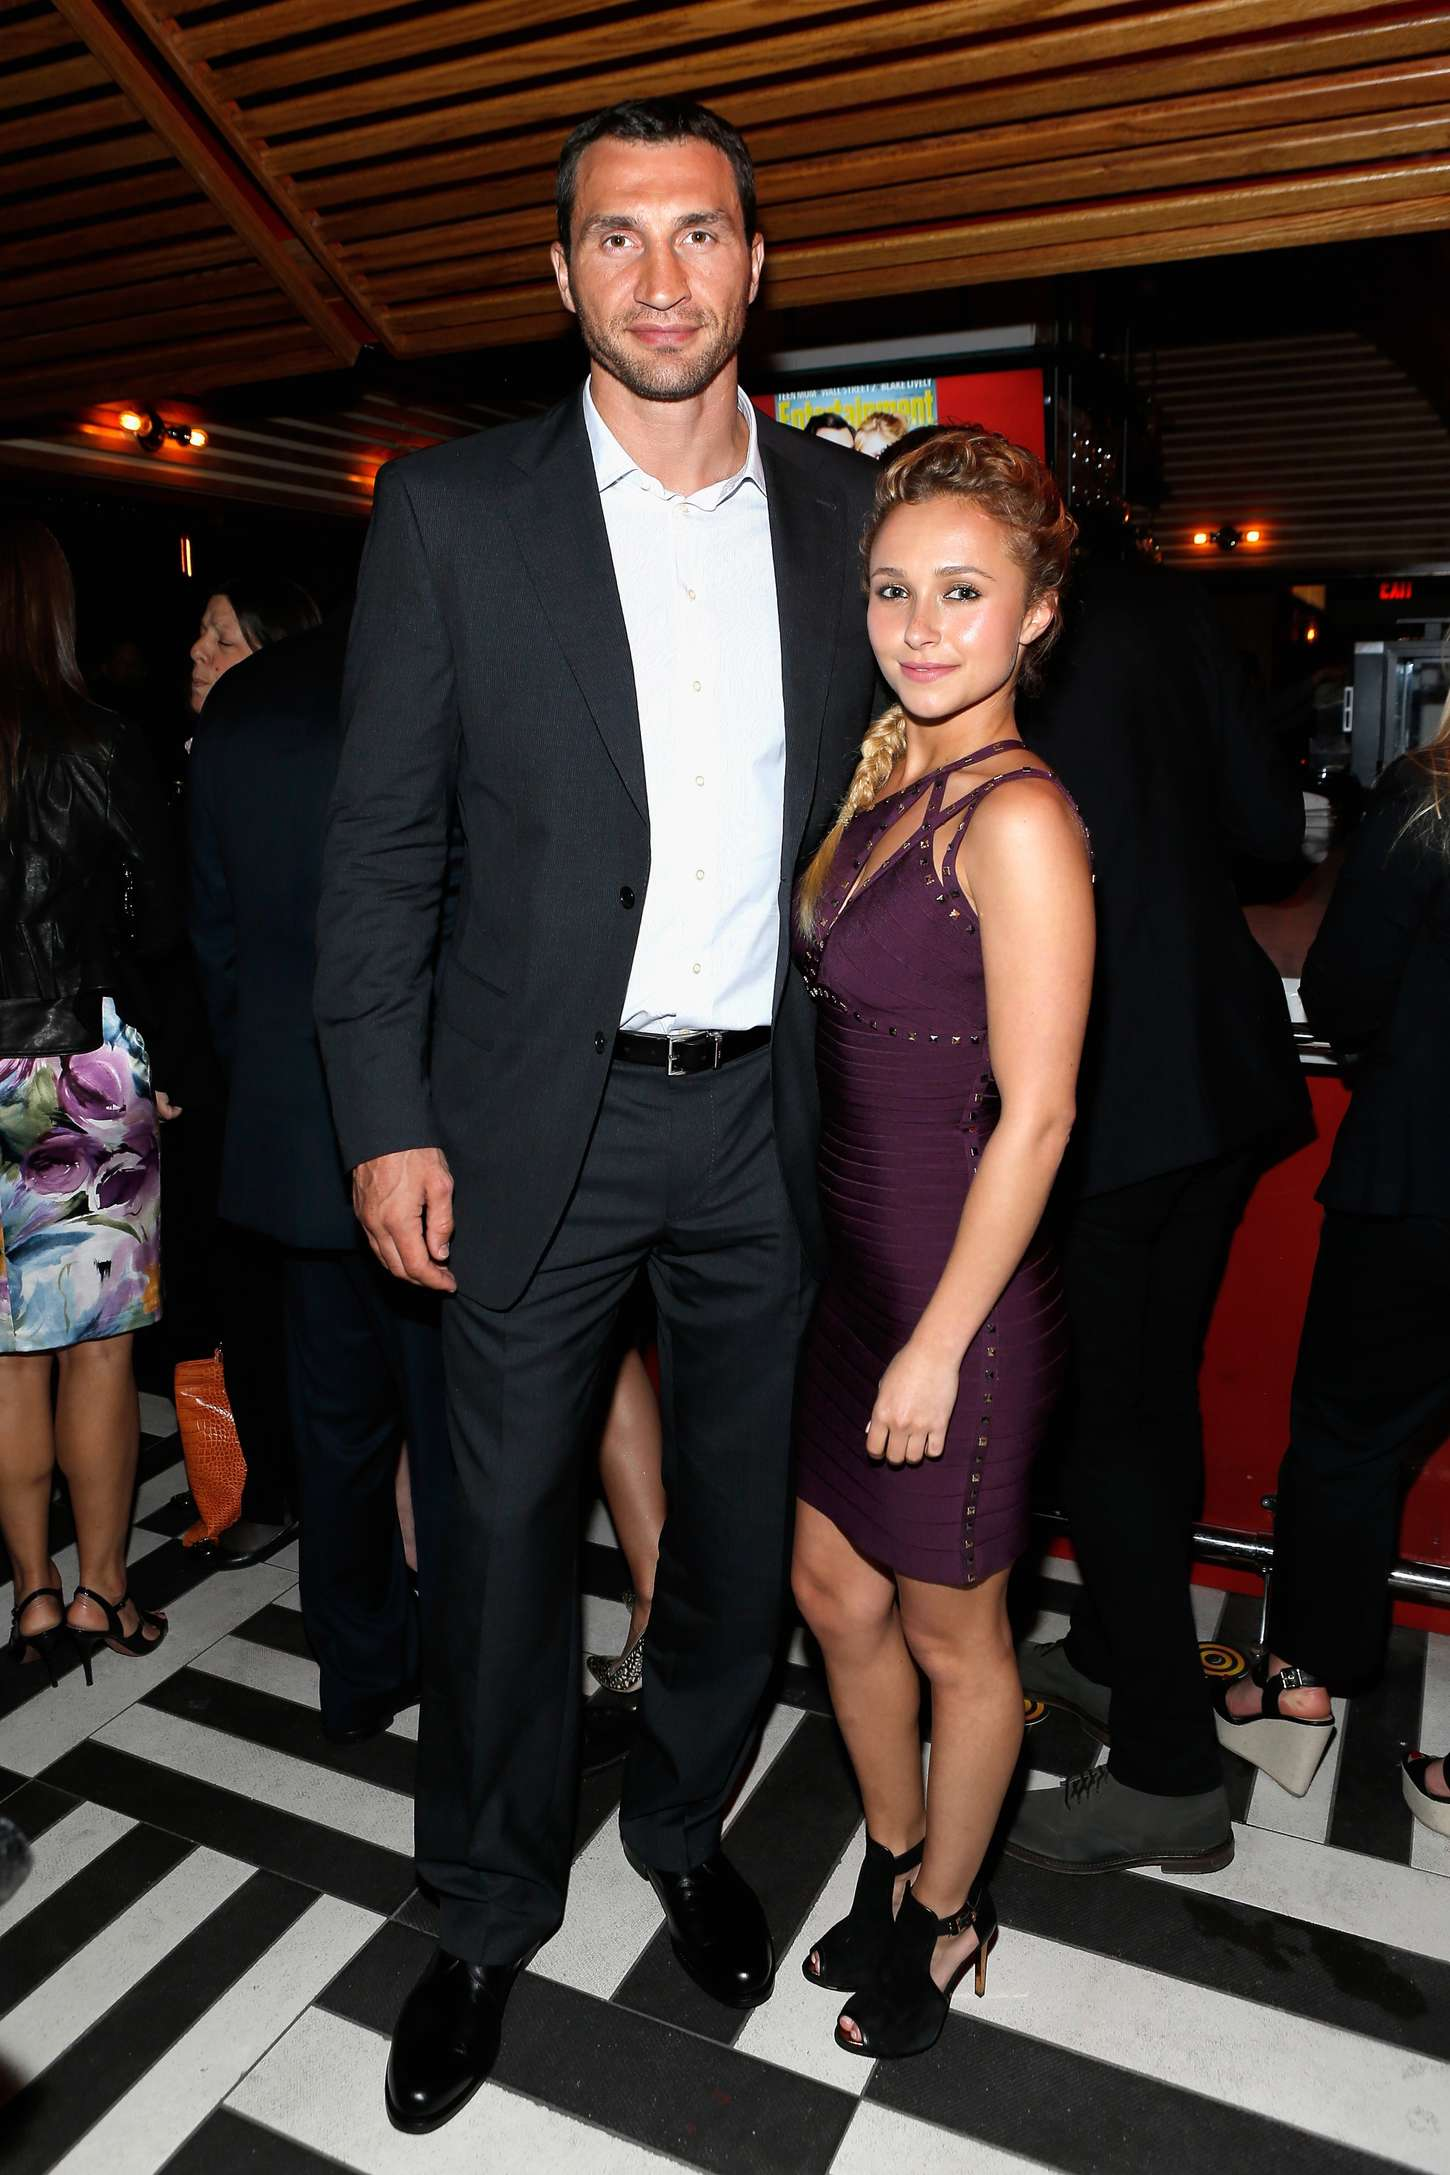 Hayden Panettiere Entertainment Weekly and ABC Upfronts Party in New York